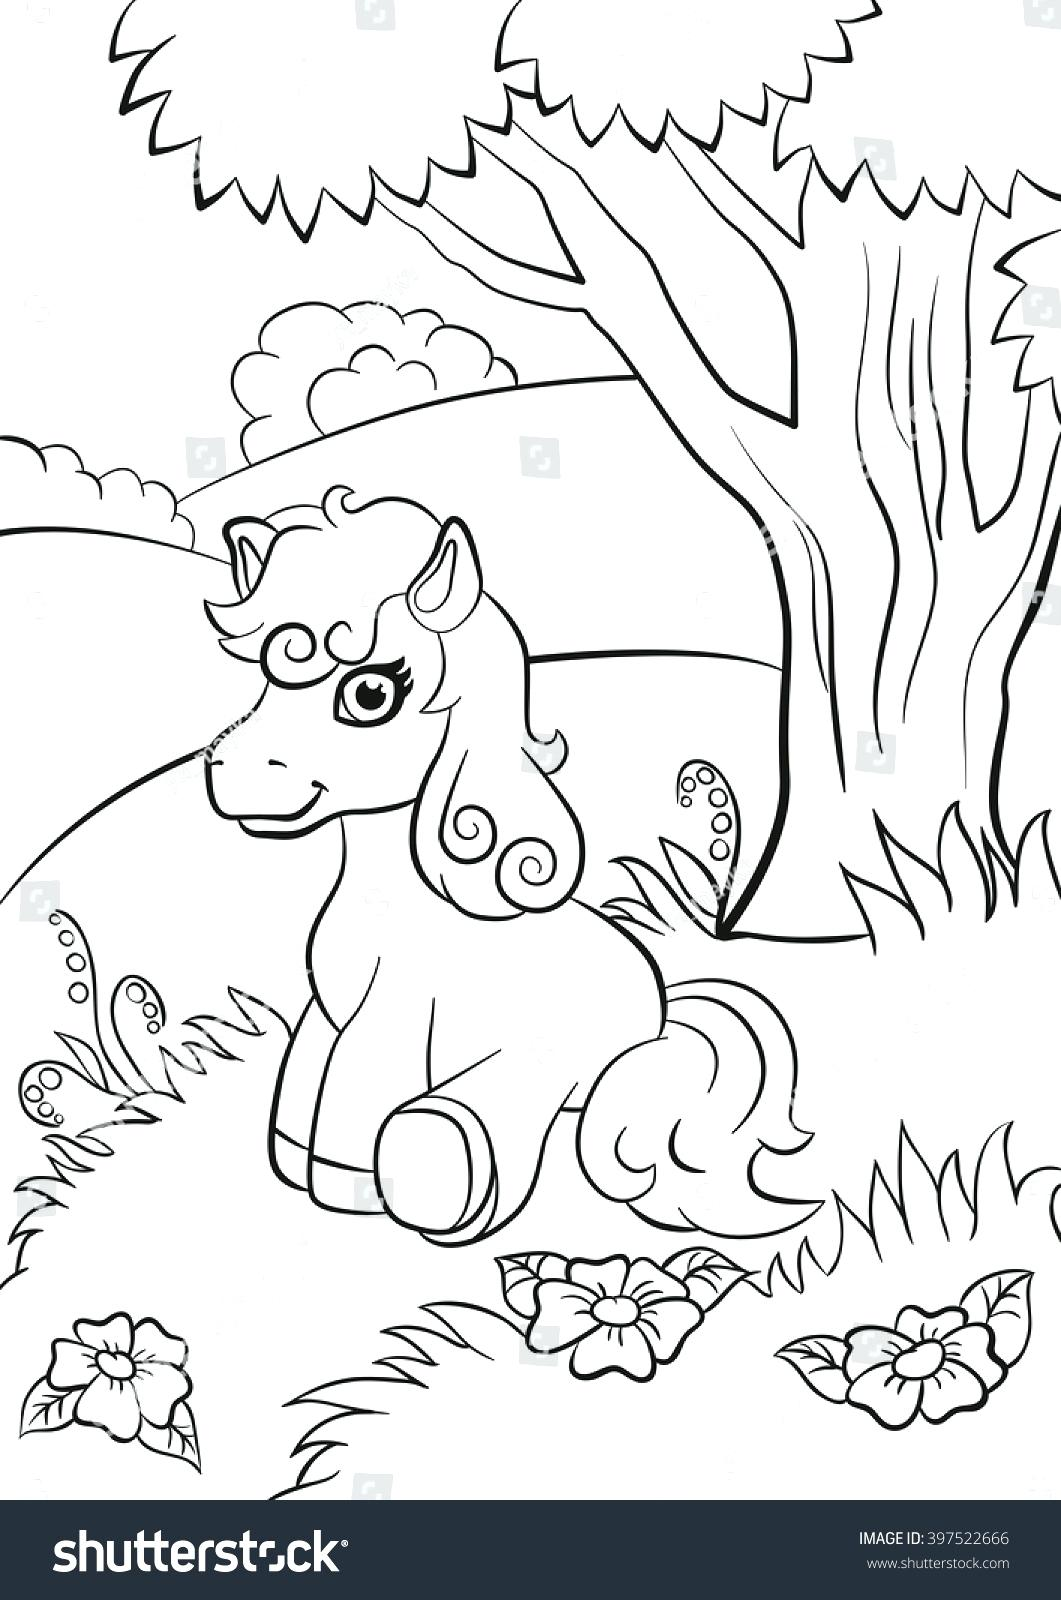 1061x1600 Coloring Five Little Monkeys Coloring Page